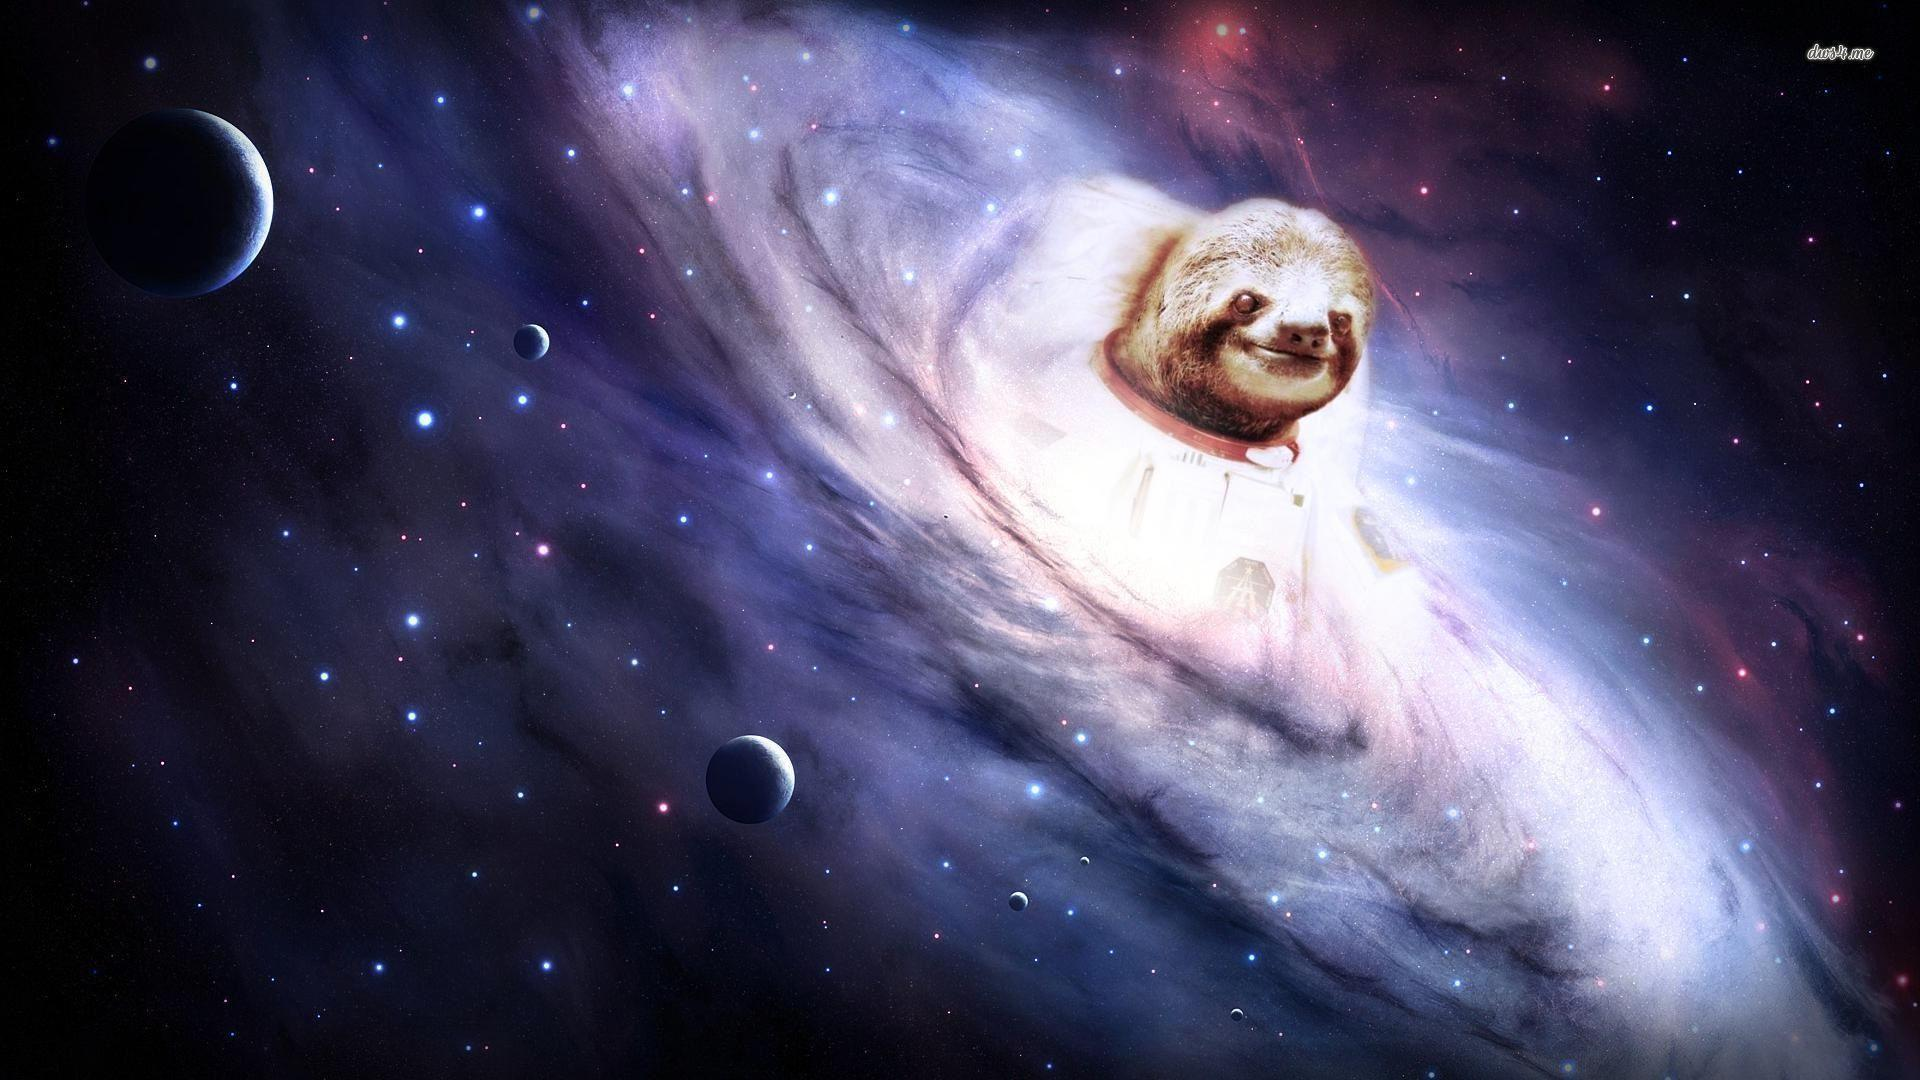 sloth astronaut facebook cover - photo #25